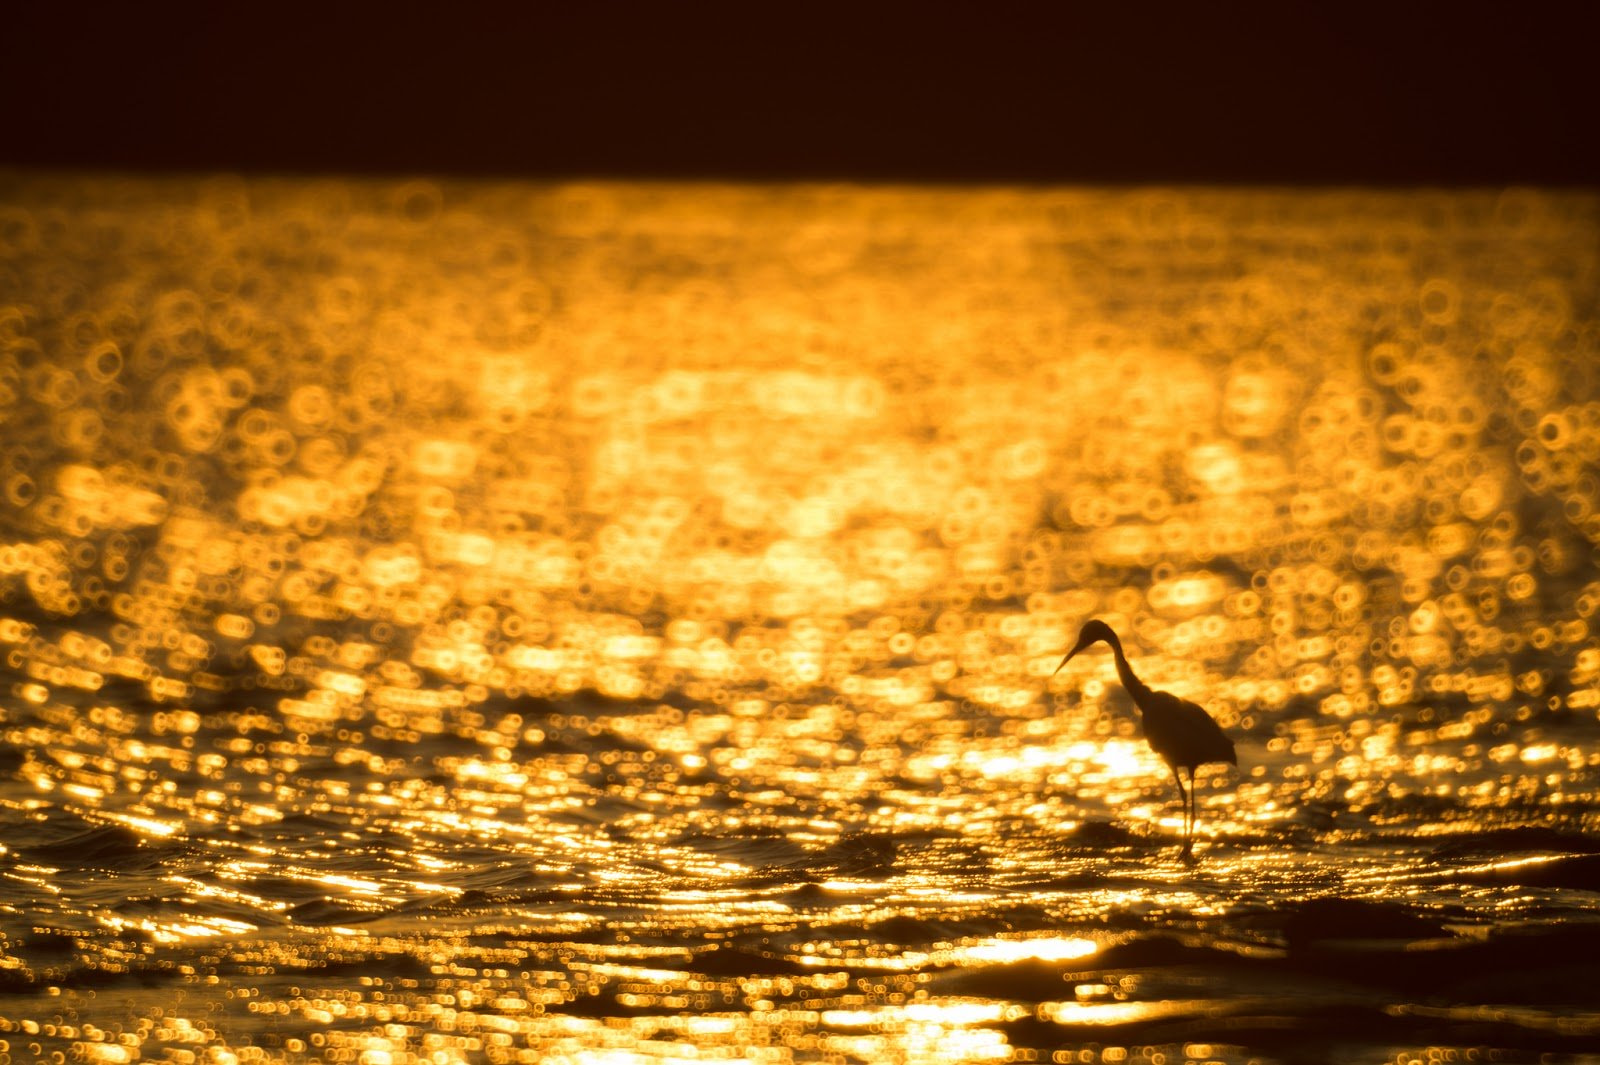 Bokeh photography of golden waters with silhouette of a bird by Takashi Hososhima